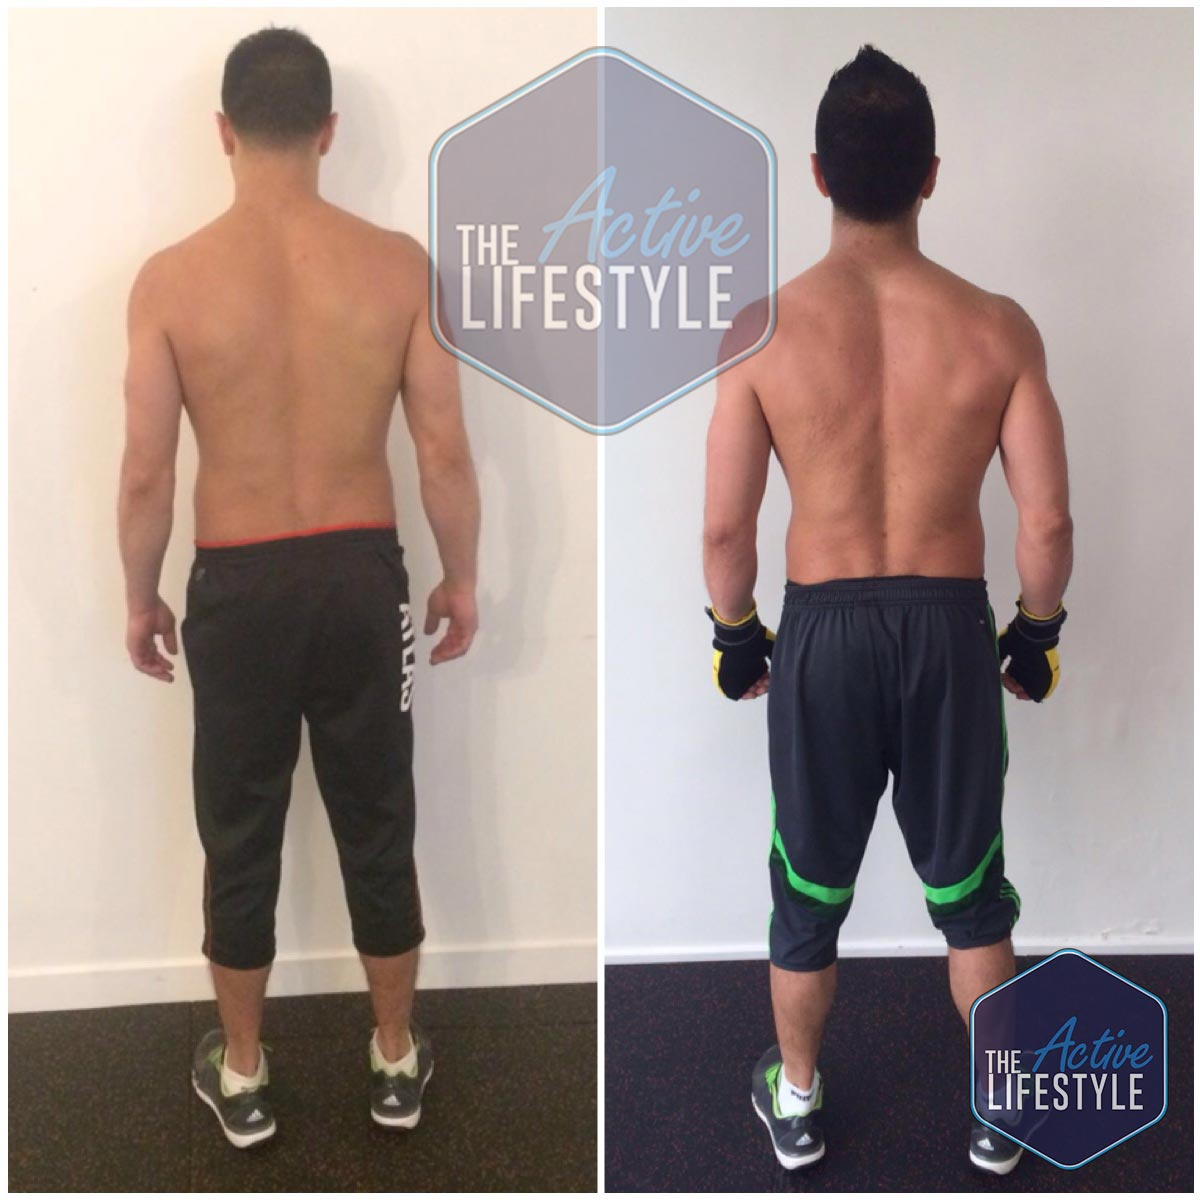 Paul is a full time chef, business owner and sports enthusiast. His frequent football and boxing meant that he had always found it difficult to build any muscle and improve his physique. Being a personal friend we are overjoyed with his transformation - he has achieved the holy grail of training - he built muscle and strength and actually lowered his body fat percentage and got his abs to show as you can see here! Congratulations mate, thank you for trusting us with your body!